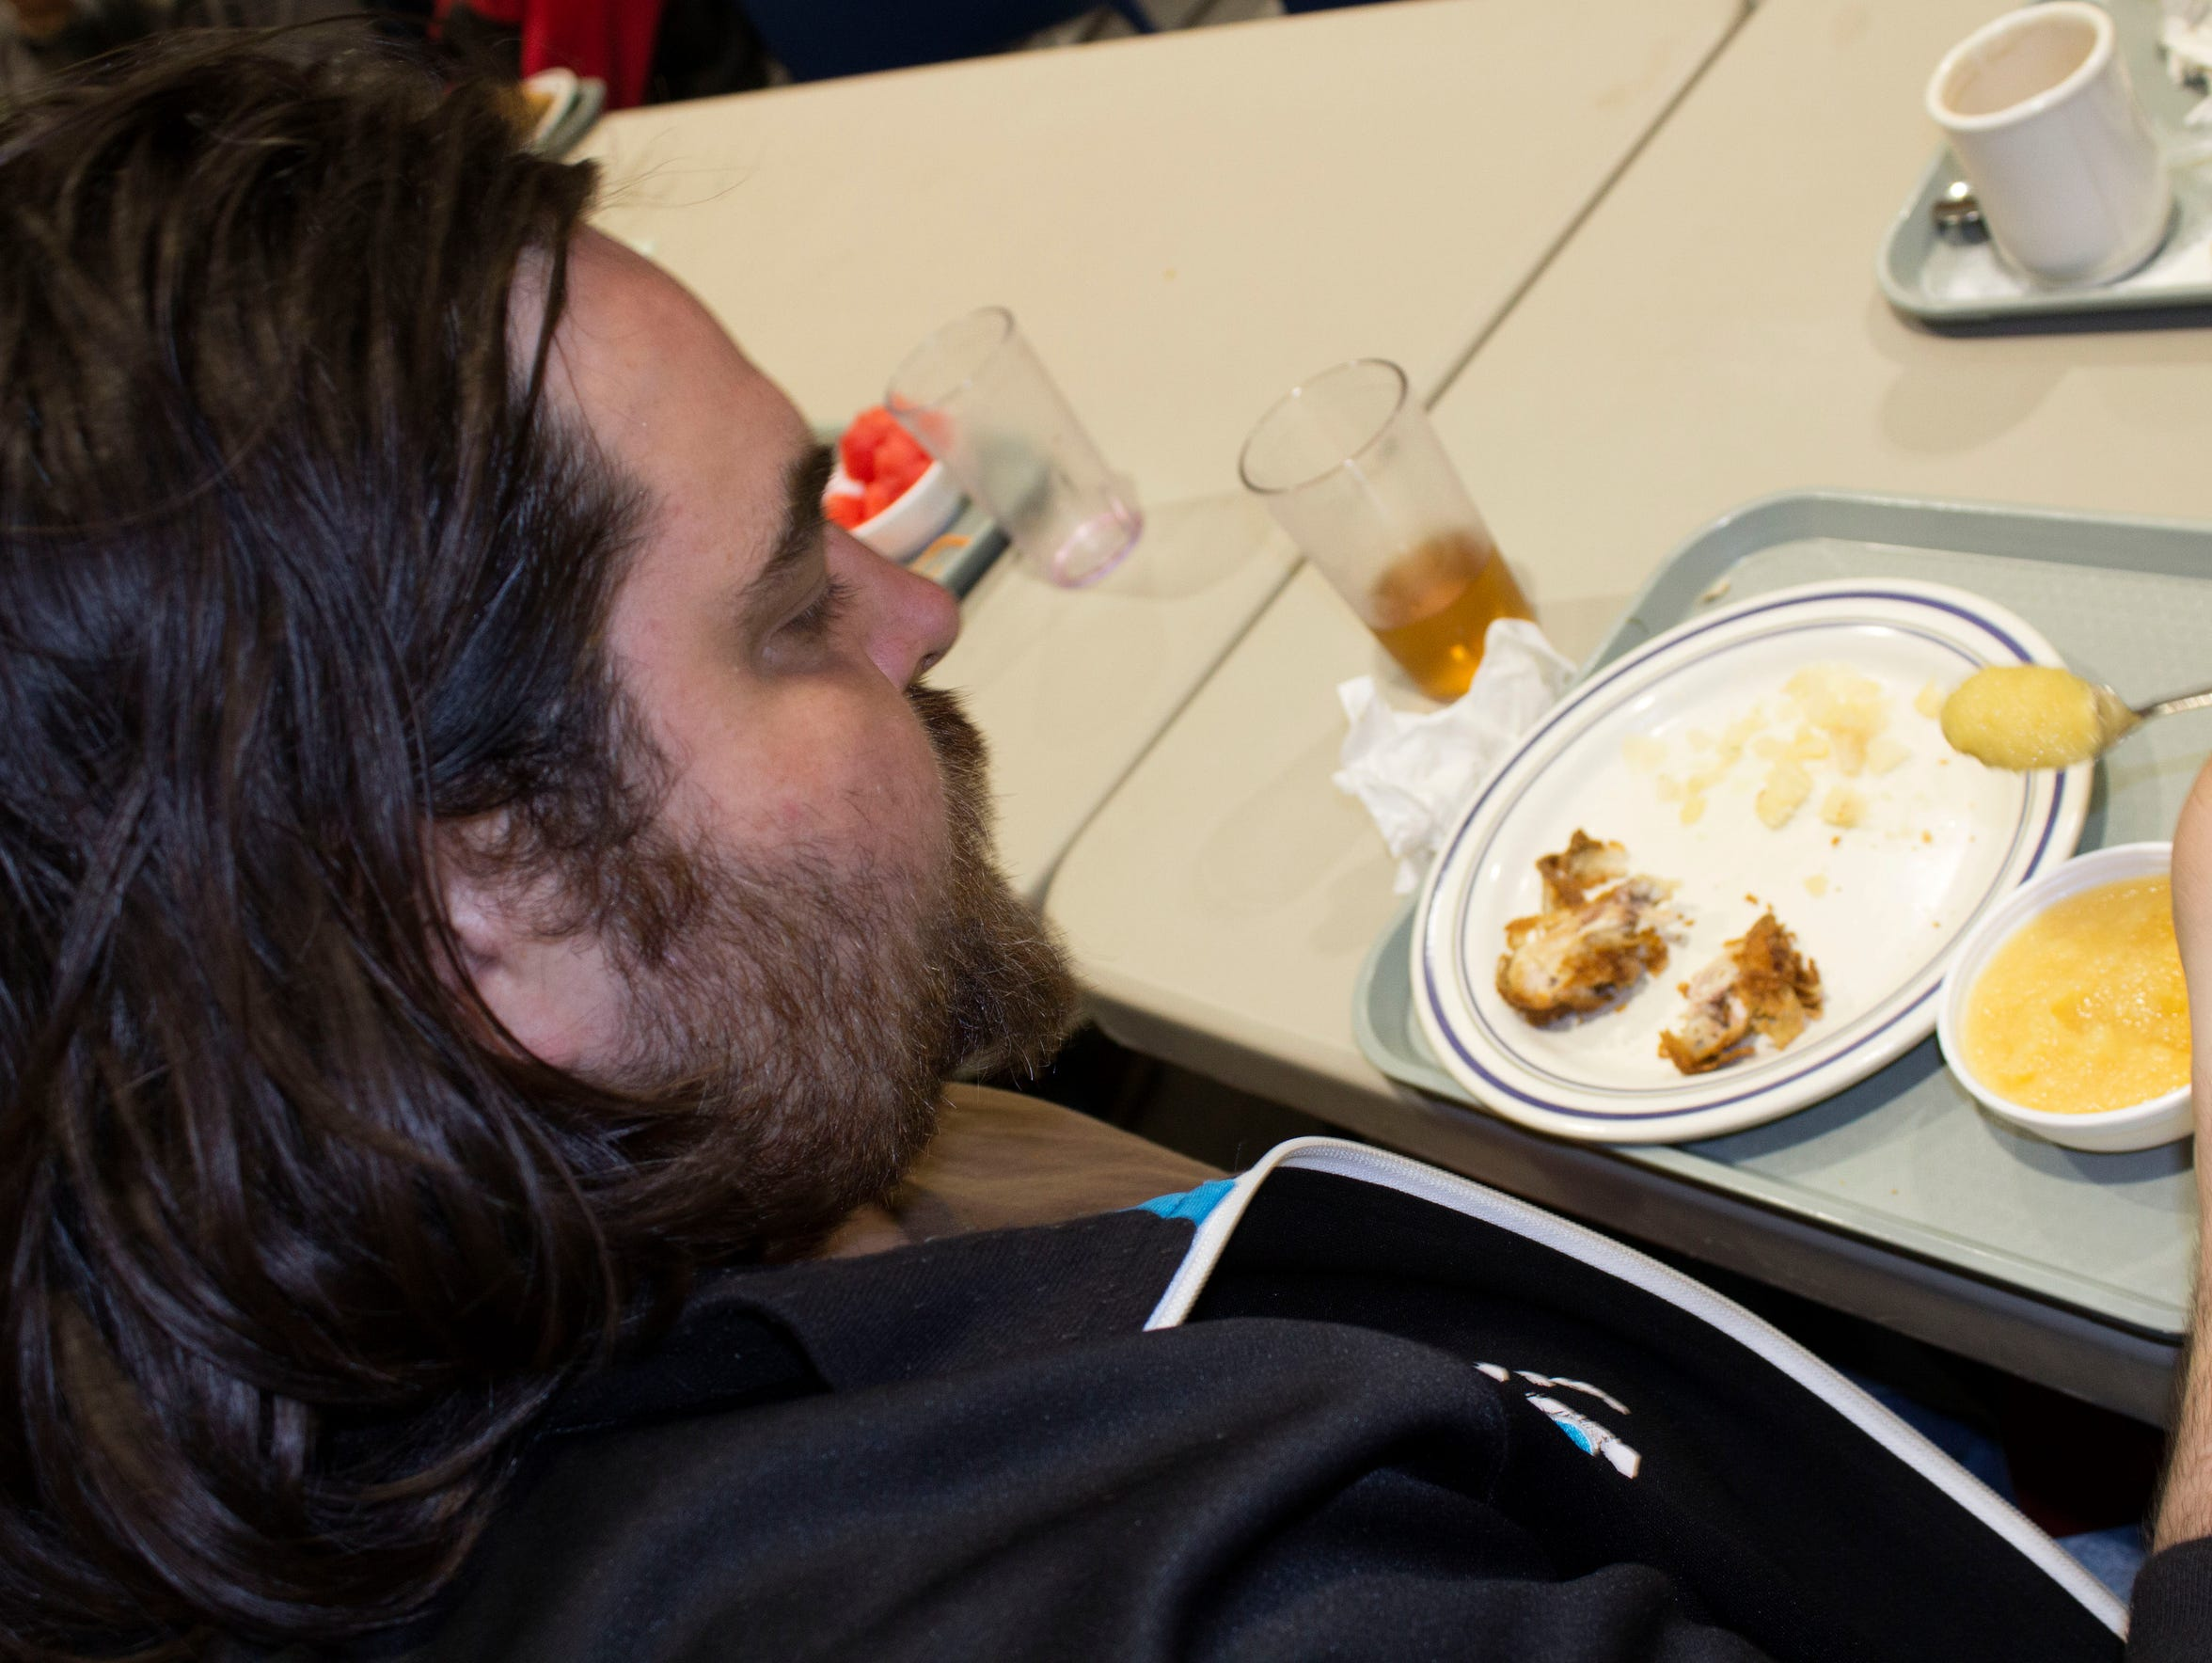 Jason Davies, 34, eats lunch at the Salvation Army